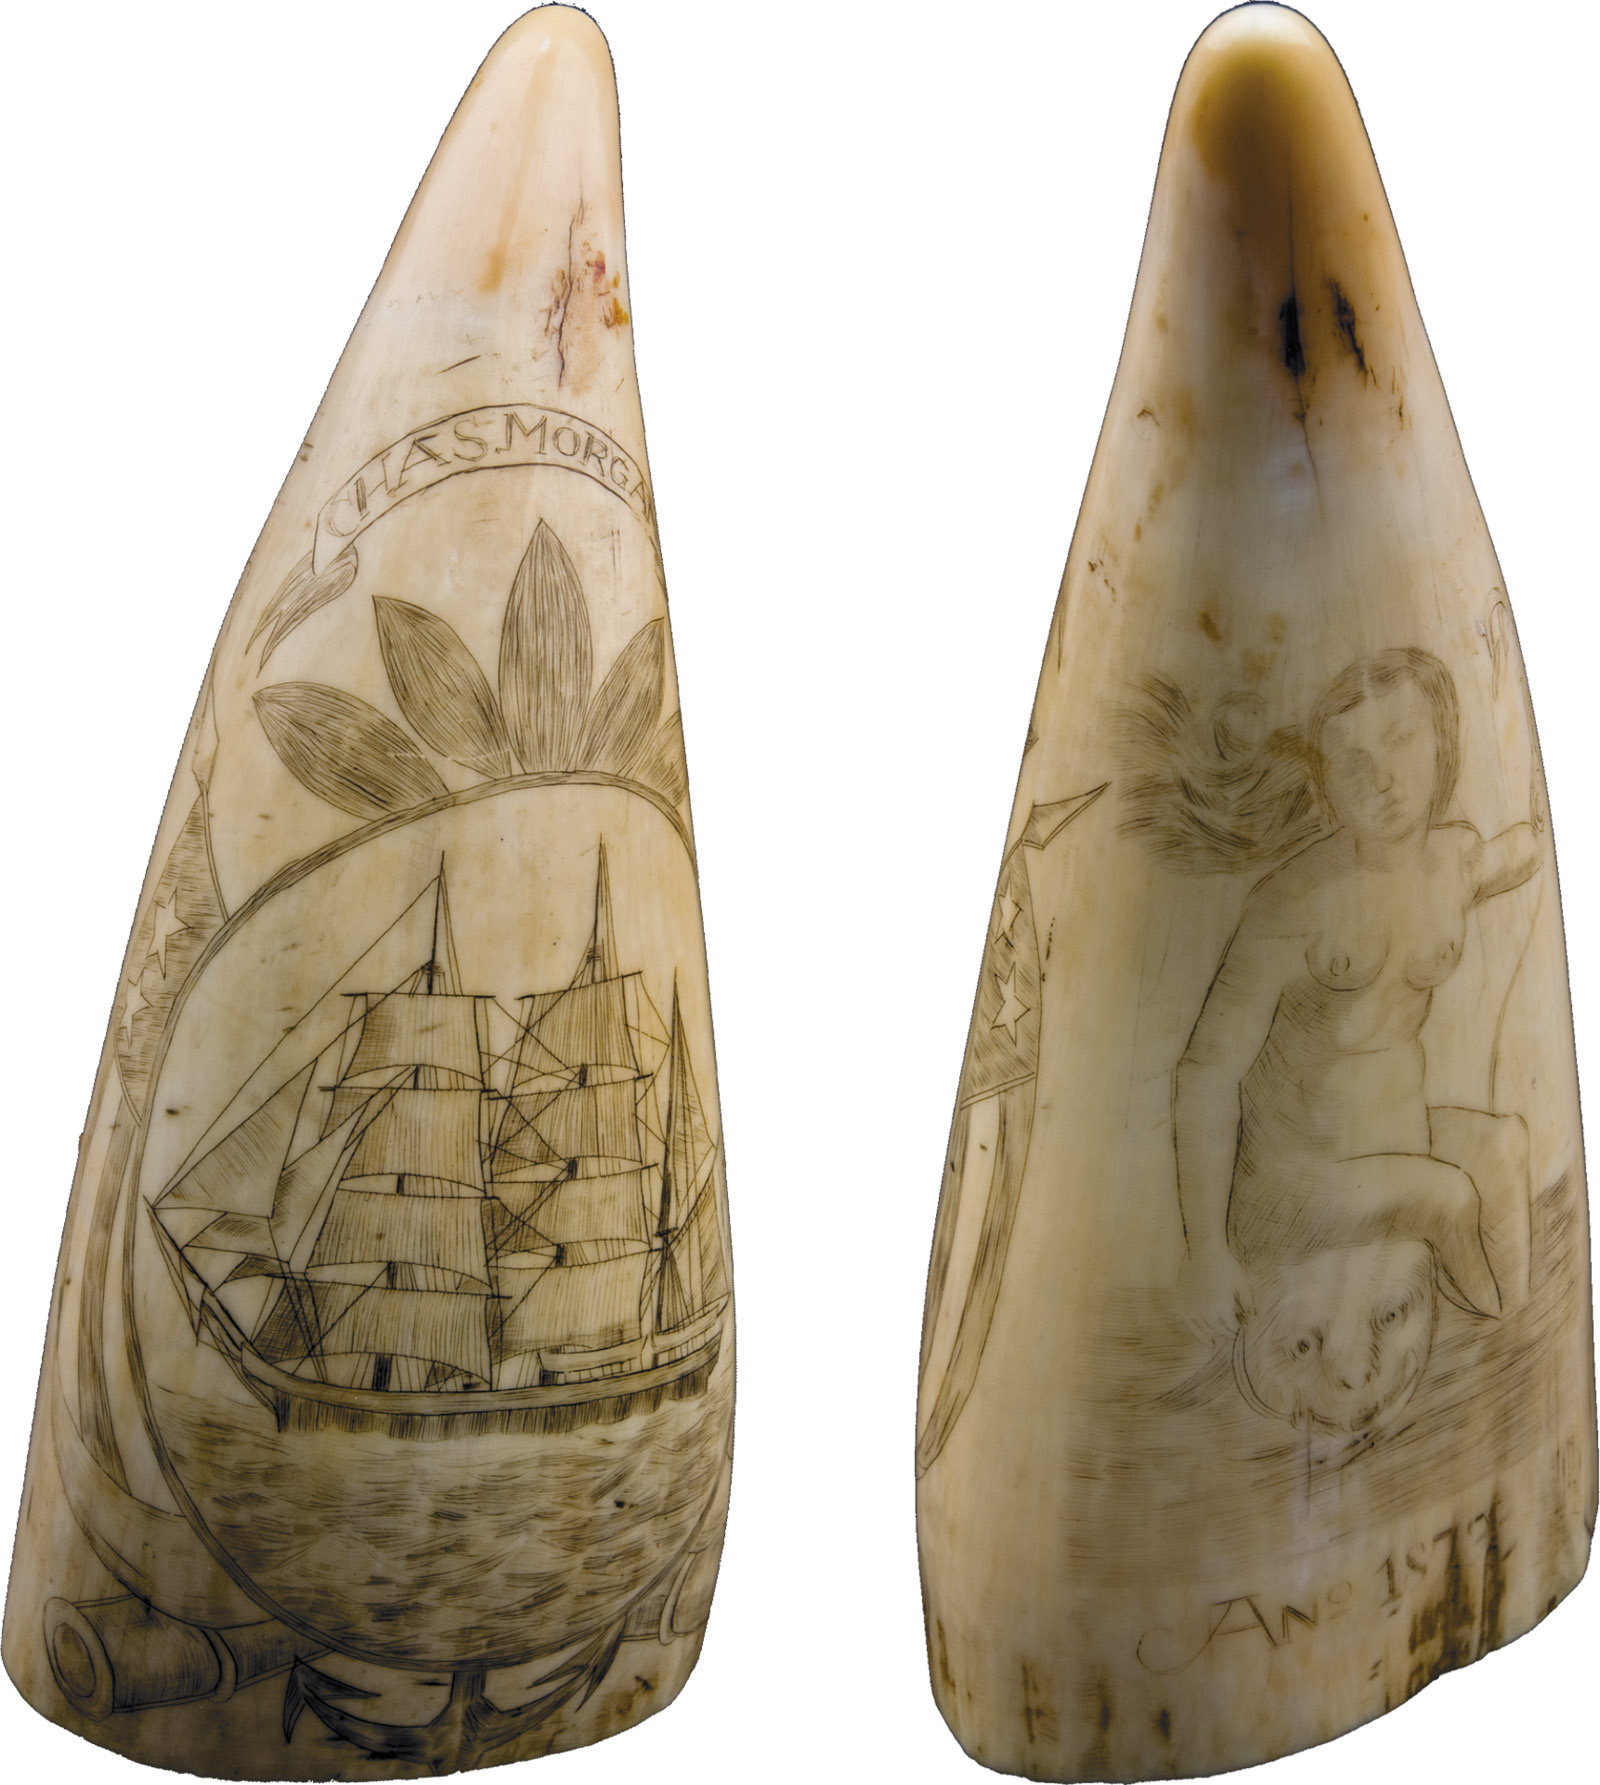 A scrimshaw tooth showing a sailing ship, a woman and sea monster, 1879